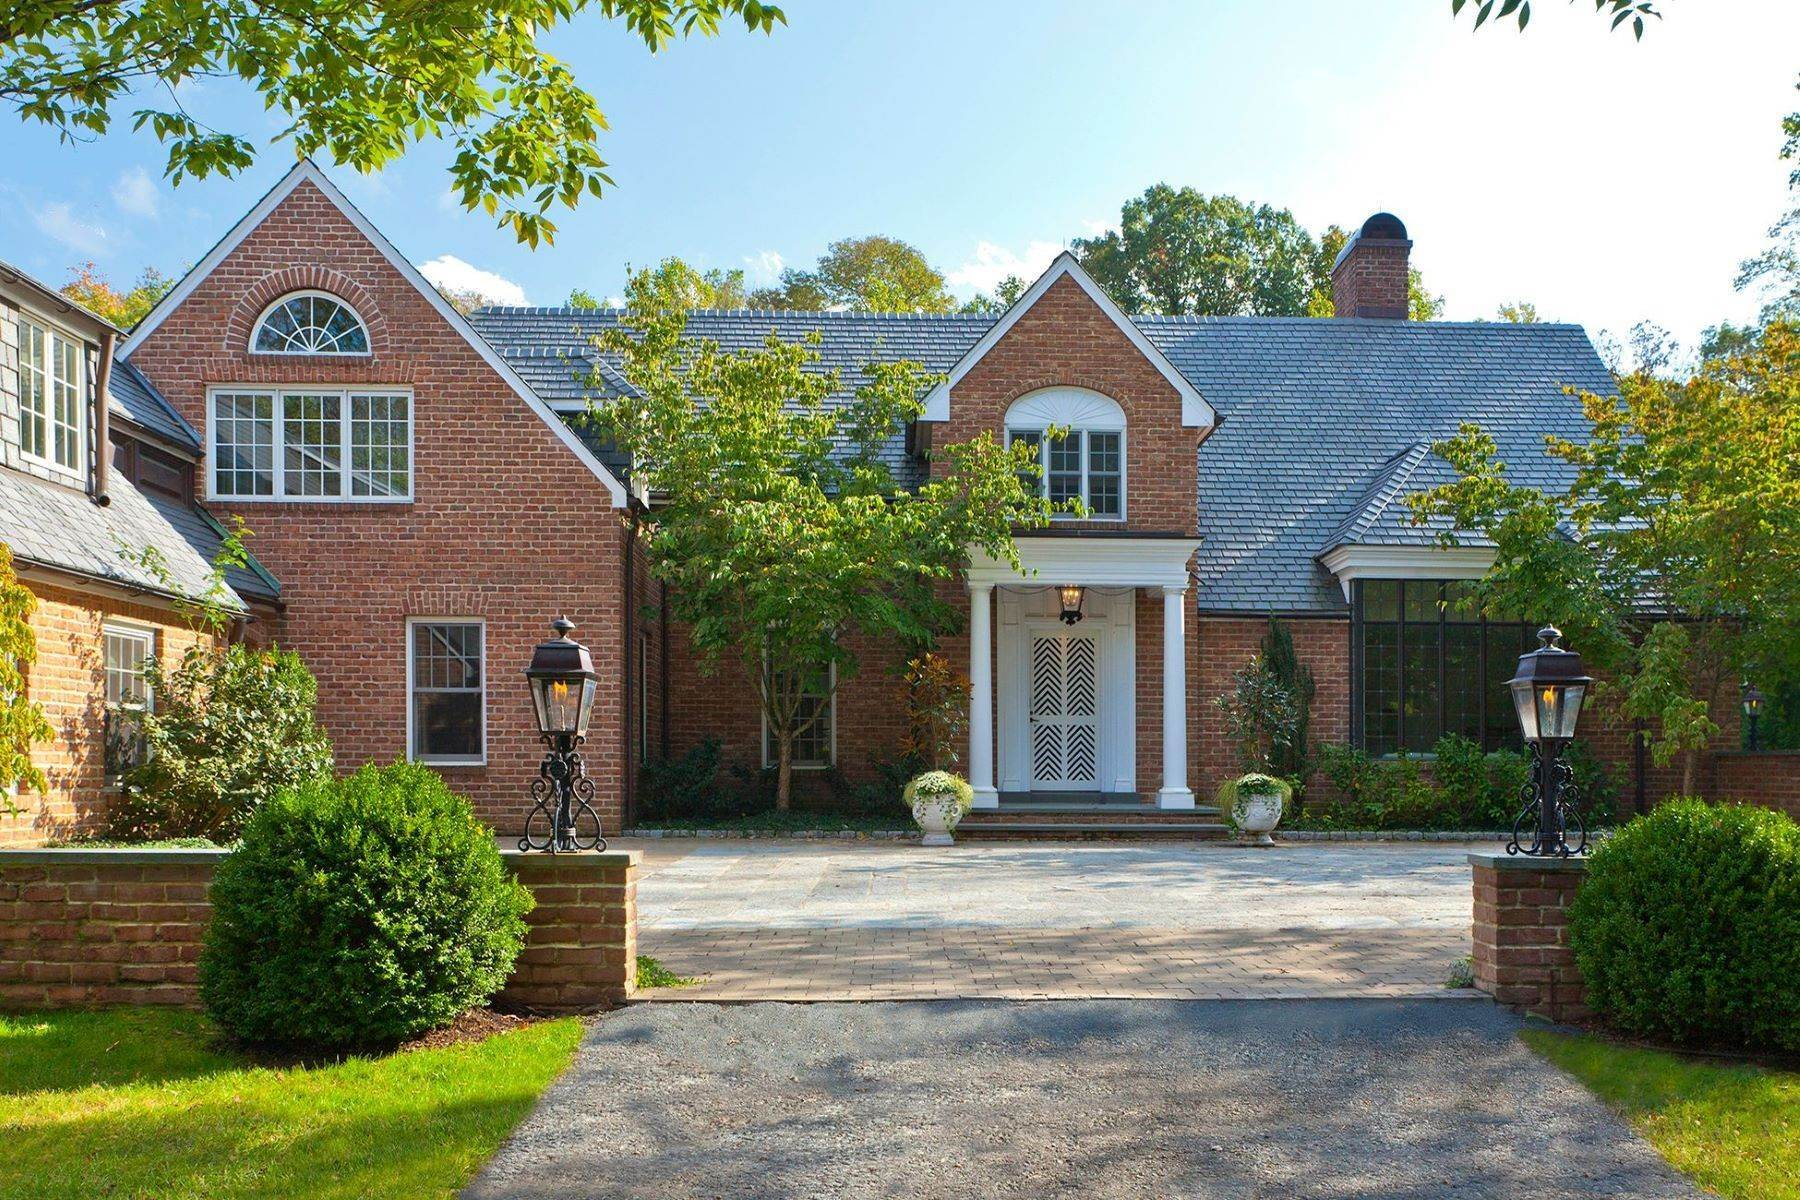 Single Family Homes for Sale at Masterfully Designed Princeton Estate on 12 Acres 5279 Province Line Road, Princeton, New Jersey 08540 United States